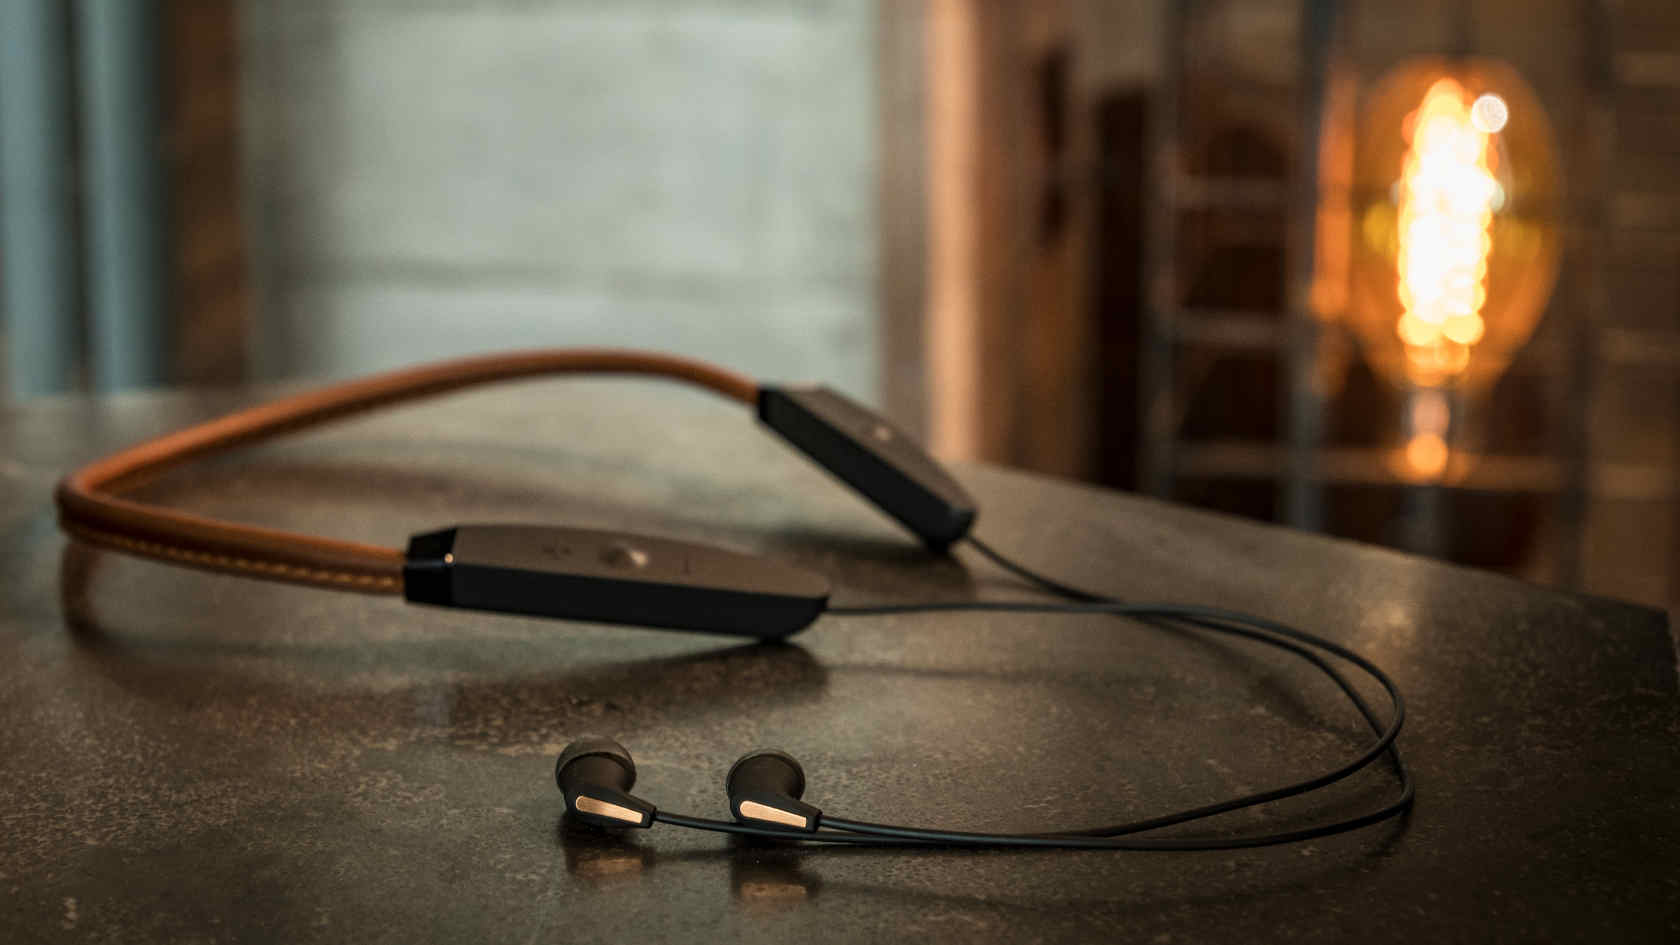 KLIPSCH R5 Neckband Wireless Headphones